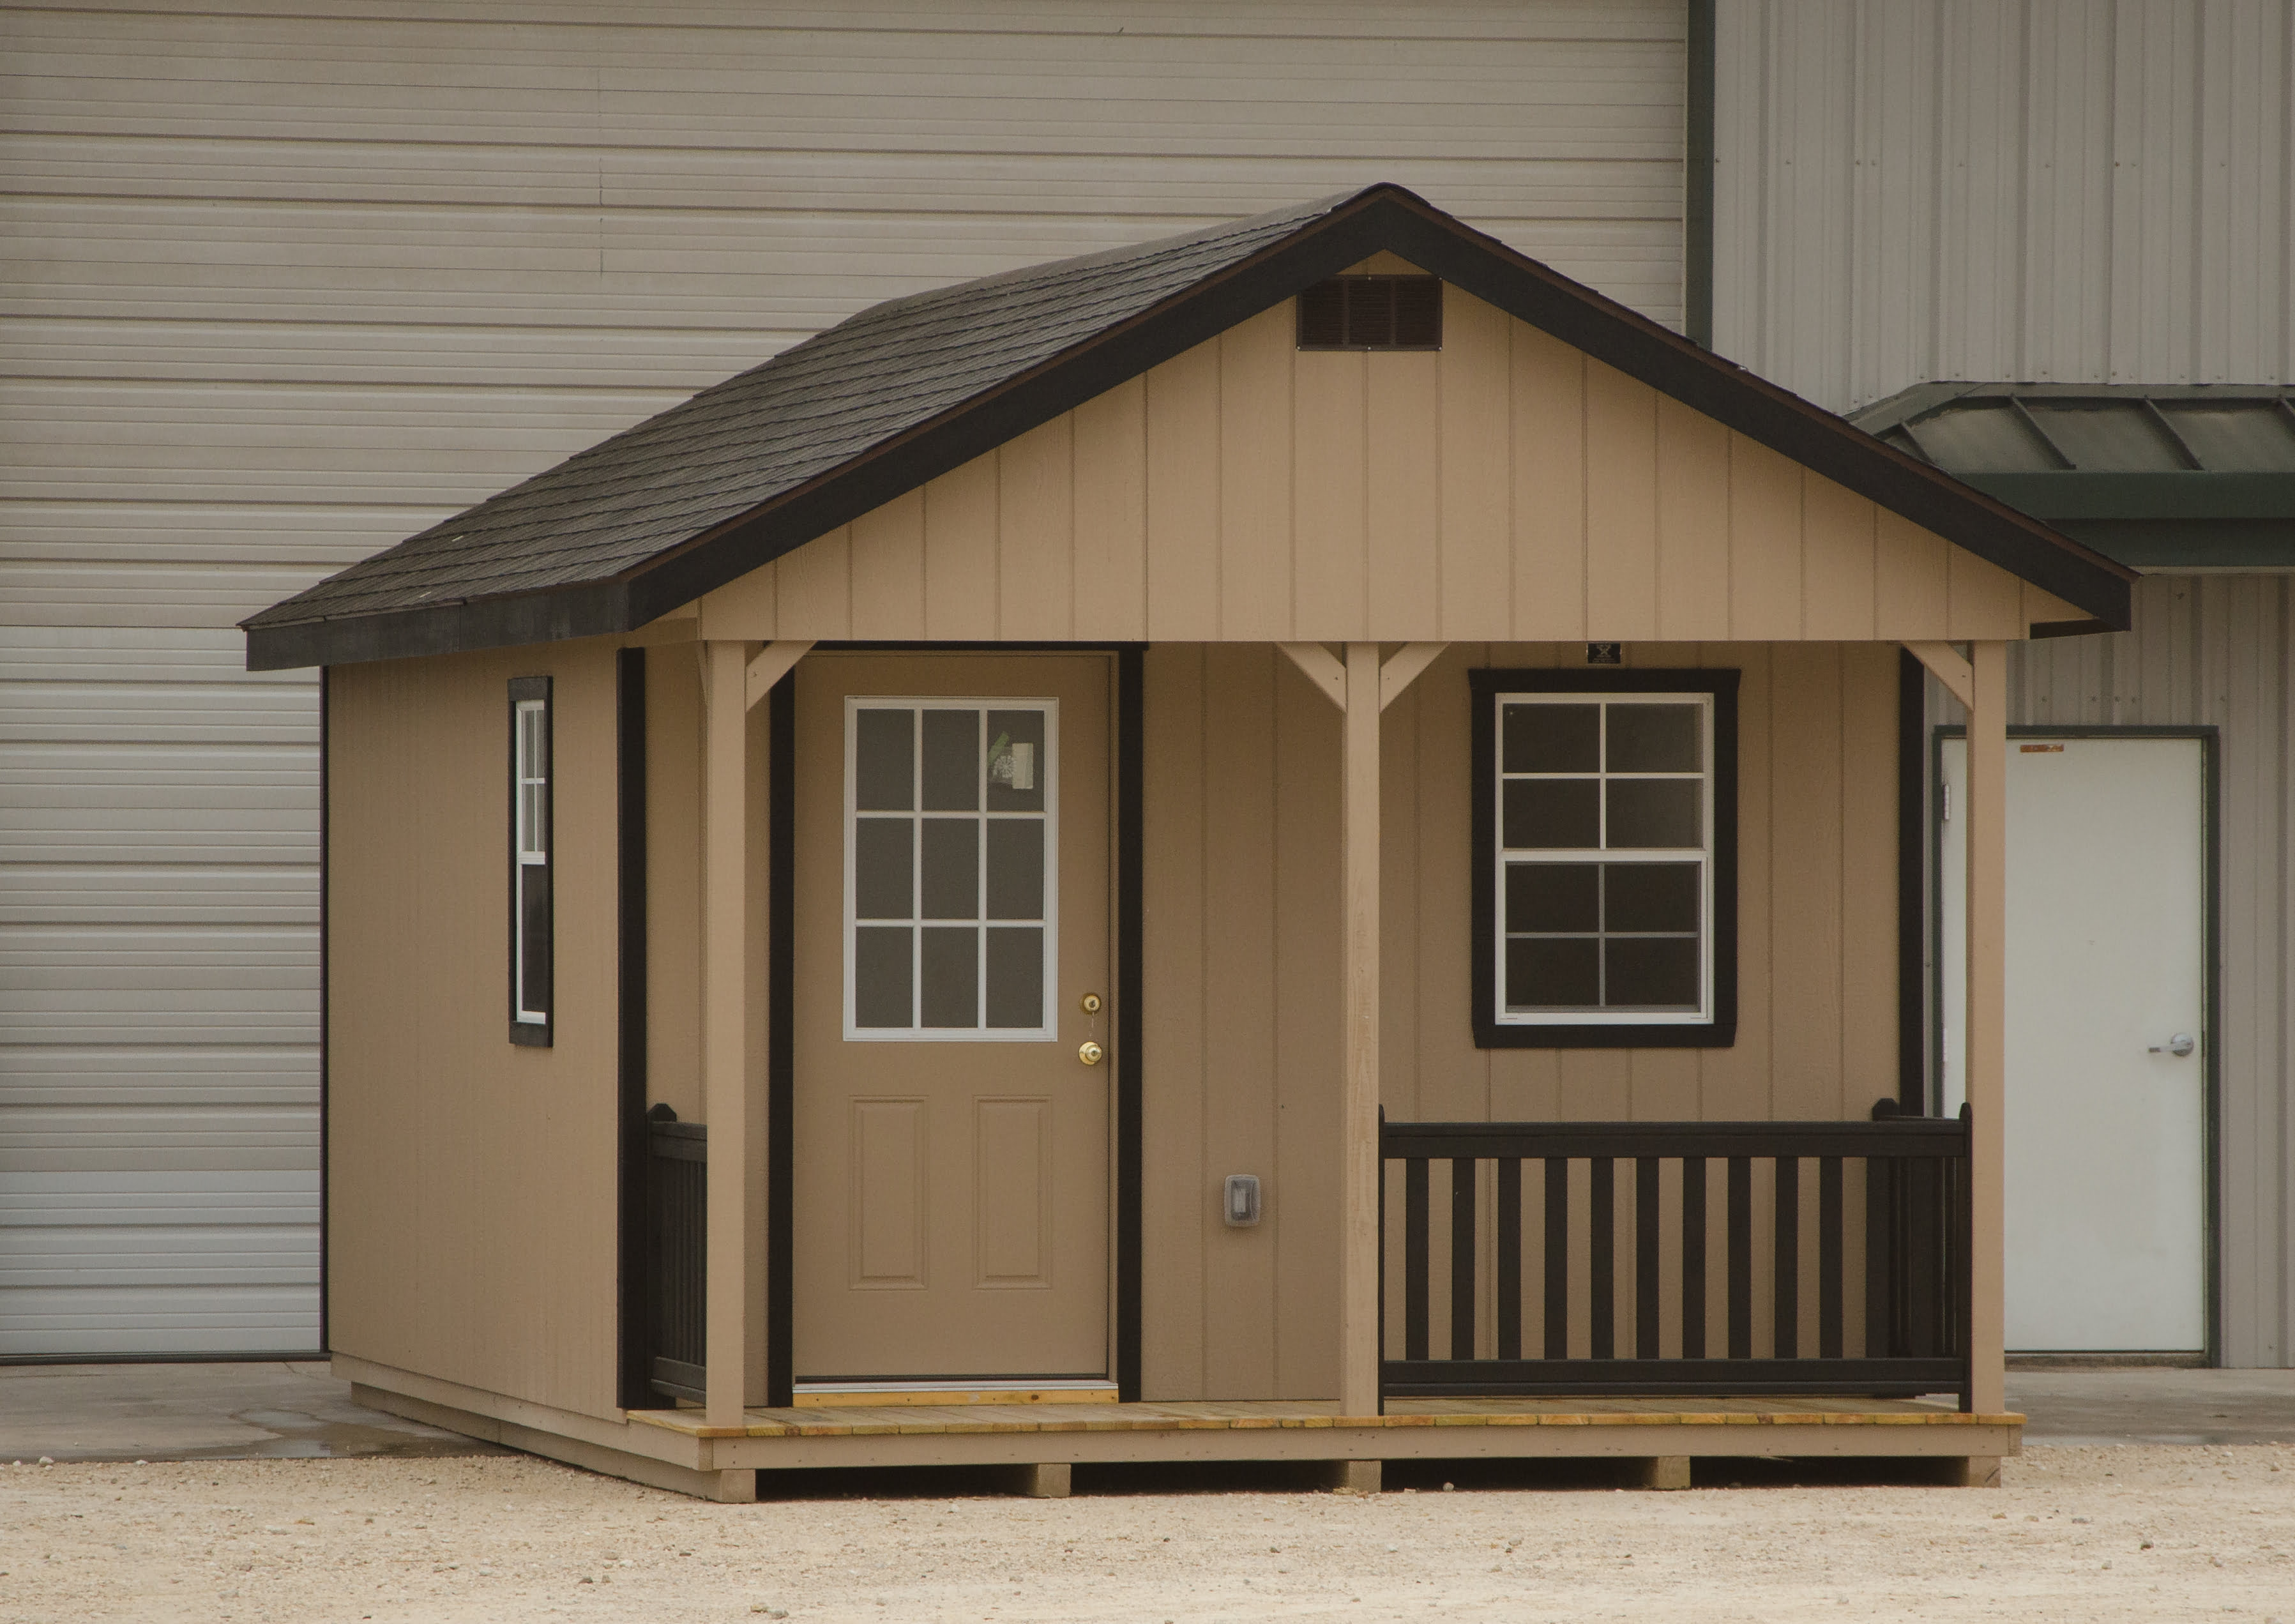 12x24 Portable Storage Building : Portable cabins for sale in lott texas lone star